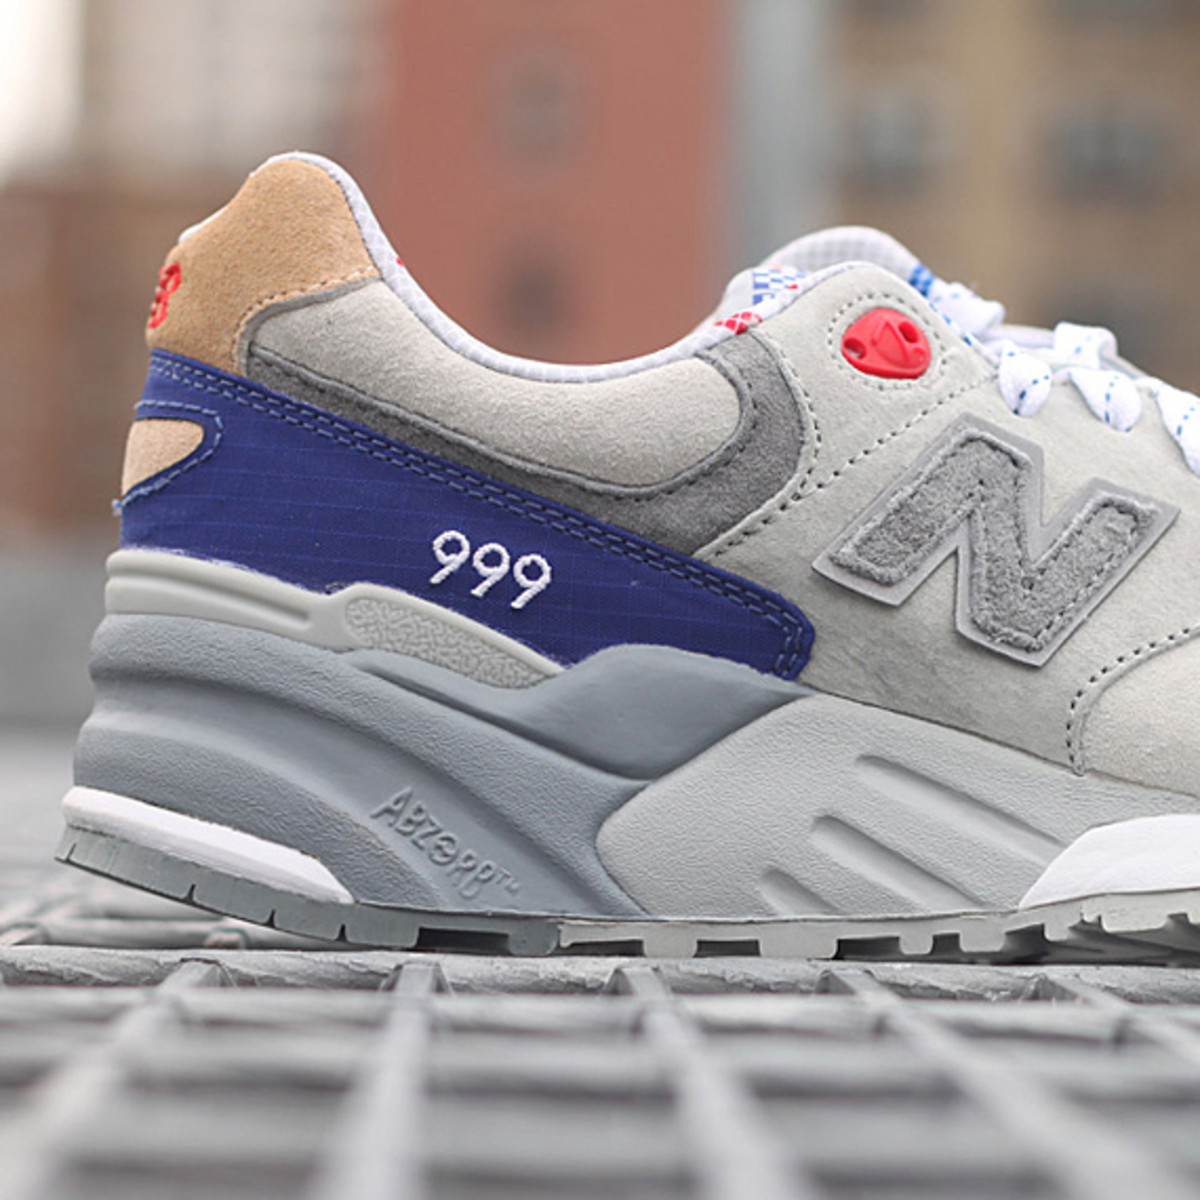 concepts-new-balance-999-kennedys-01